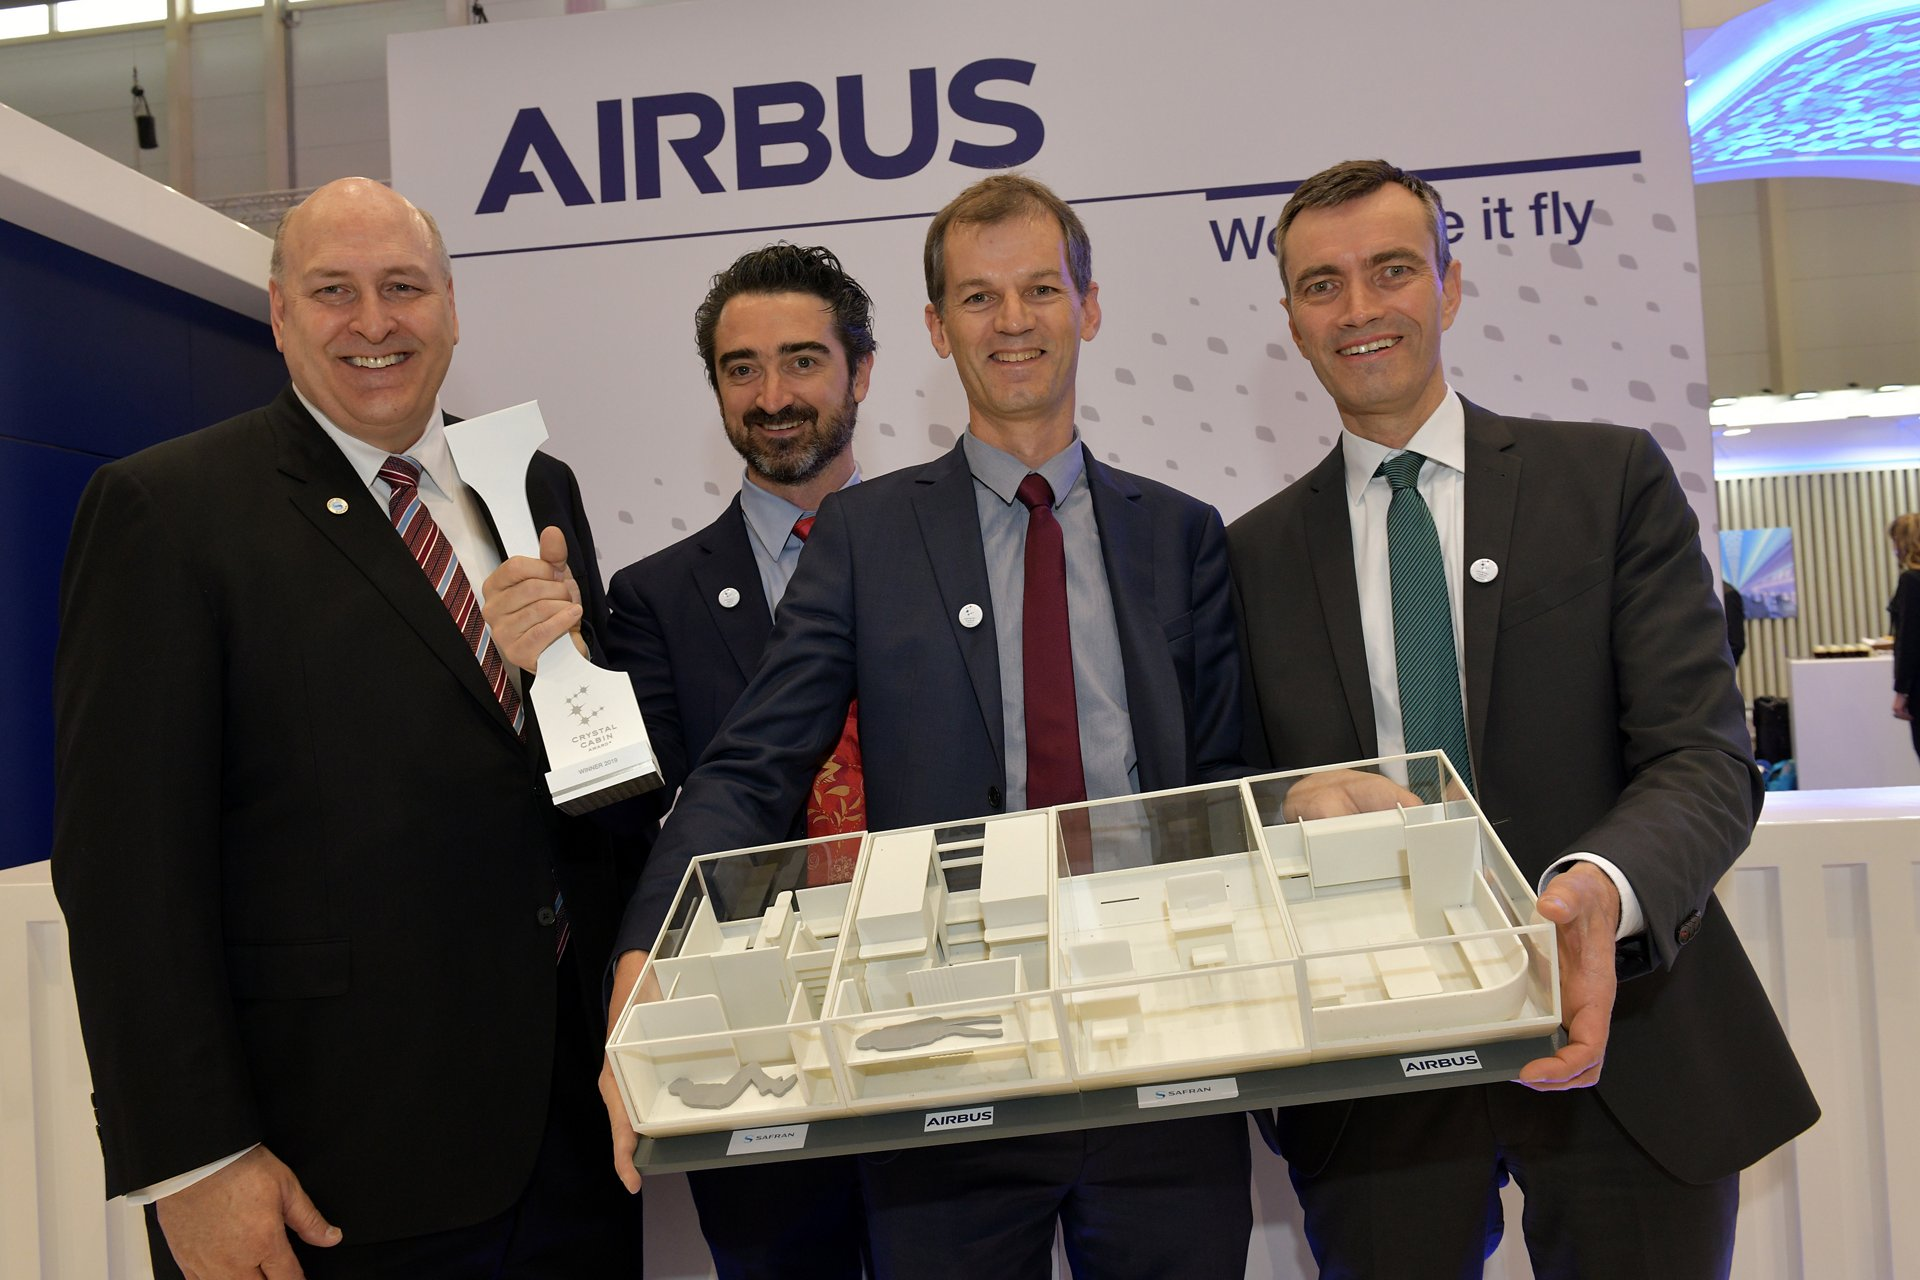 Airbus and Safran won the 2019 Crystal Cabin Award in the Cabin Concepts category during Aircraft Interiors Expo; present at the event were: Norman Jordan, CEO of Safran Cabin; Sebastien Sivignon, Innovation Project Director, Safran Innovation; Frederic Mazel, Cabin Product Director, Airbus; Sören Scholz, SVP Cabin & Cargo Programme, Airbus